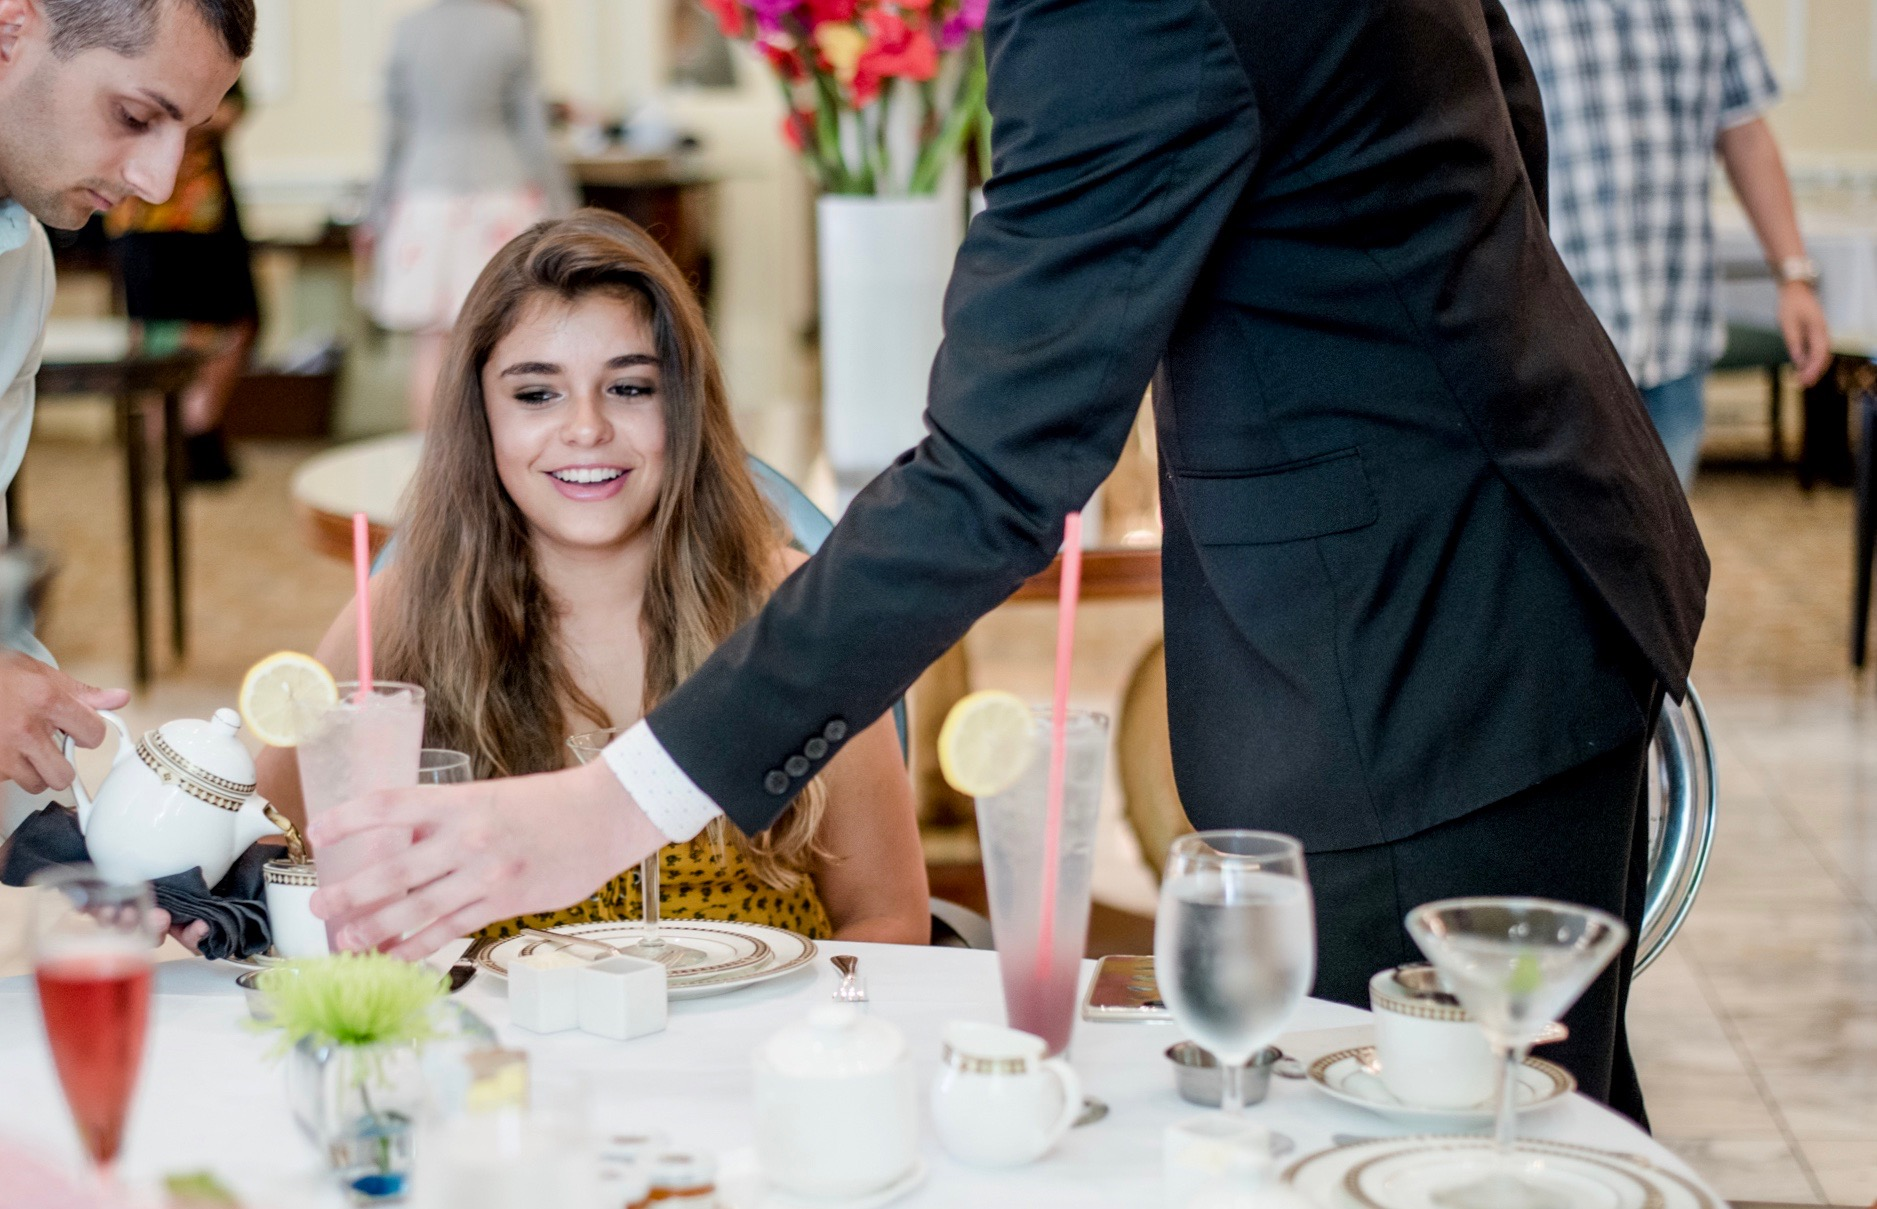 girl is waited on by attentive staff during High Tea at the Fairmont Olympic Hotel in Seattle, WA